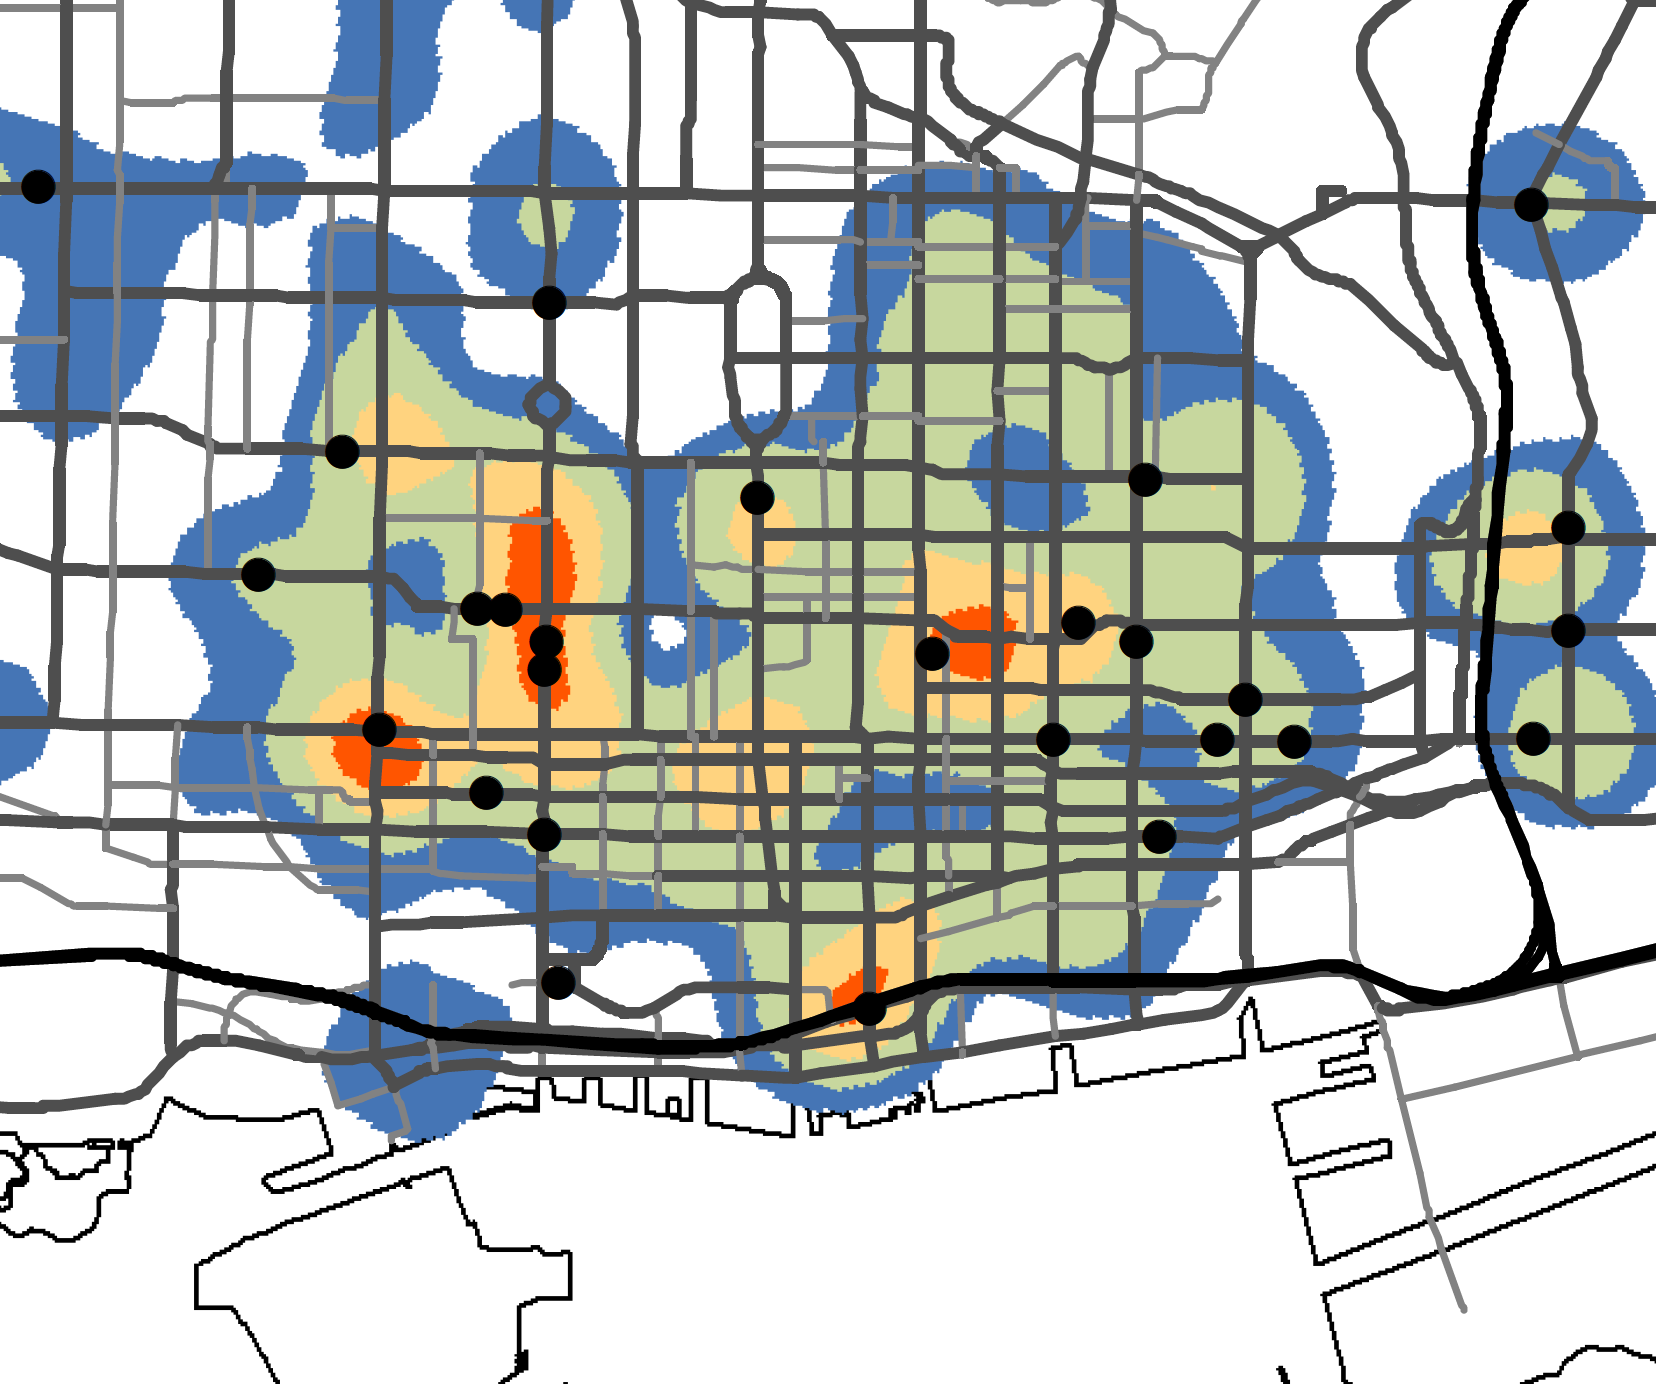 Pedestrian Injury Heat Map